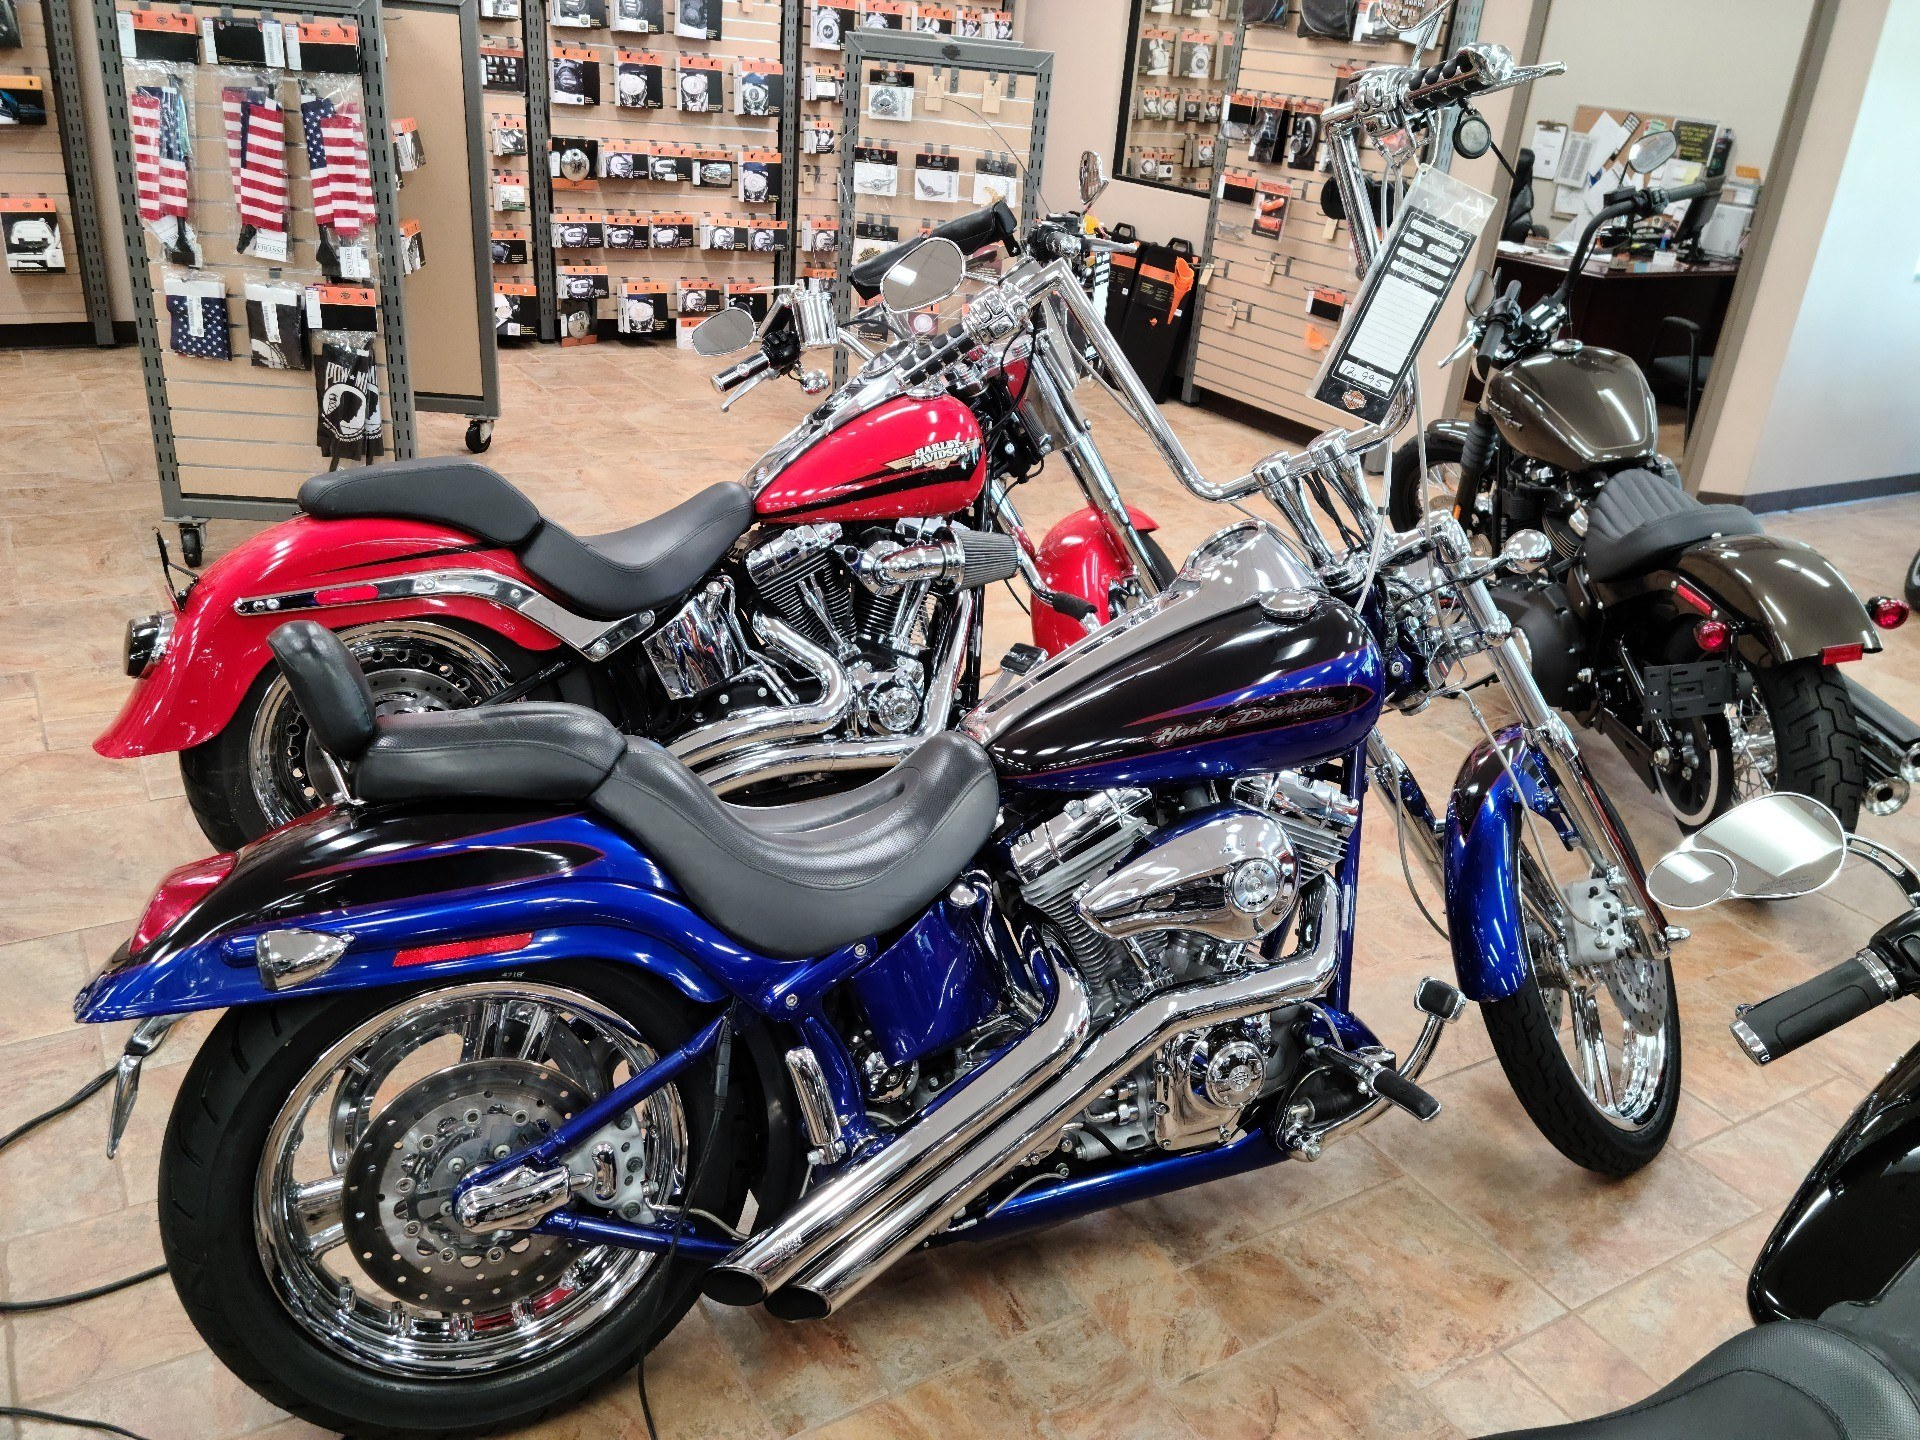 Used 2004 Harley Davidson Fxstdse Screamin Eagle Softail Deuce Two Tone Candy Cobalt And Starlight Black Motorcycles In Cincinnati Oh U071520npa22